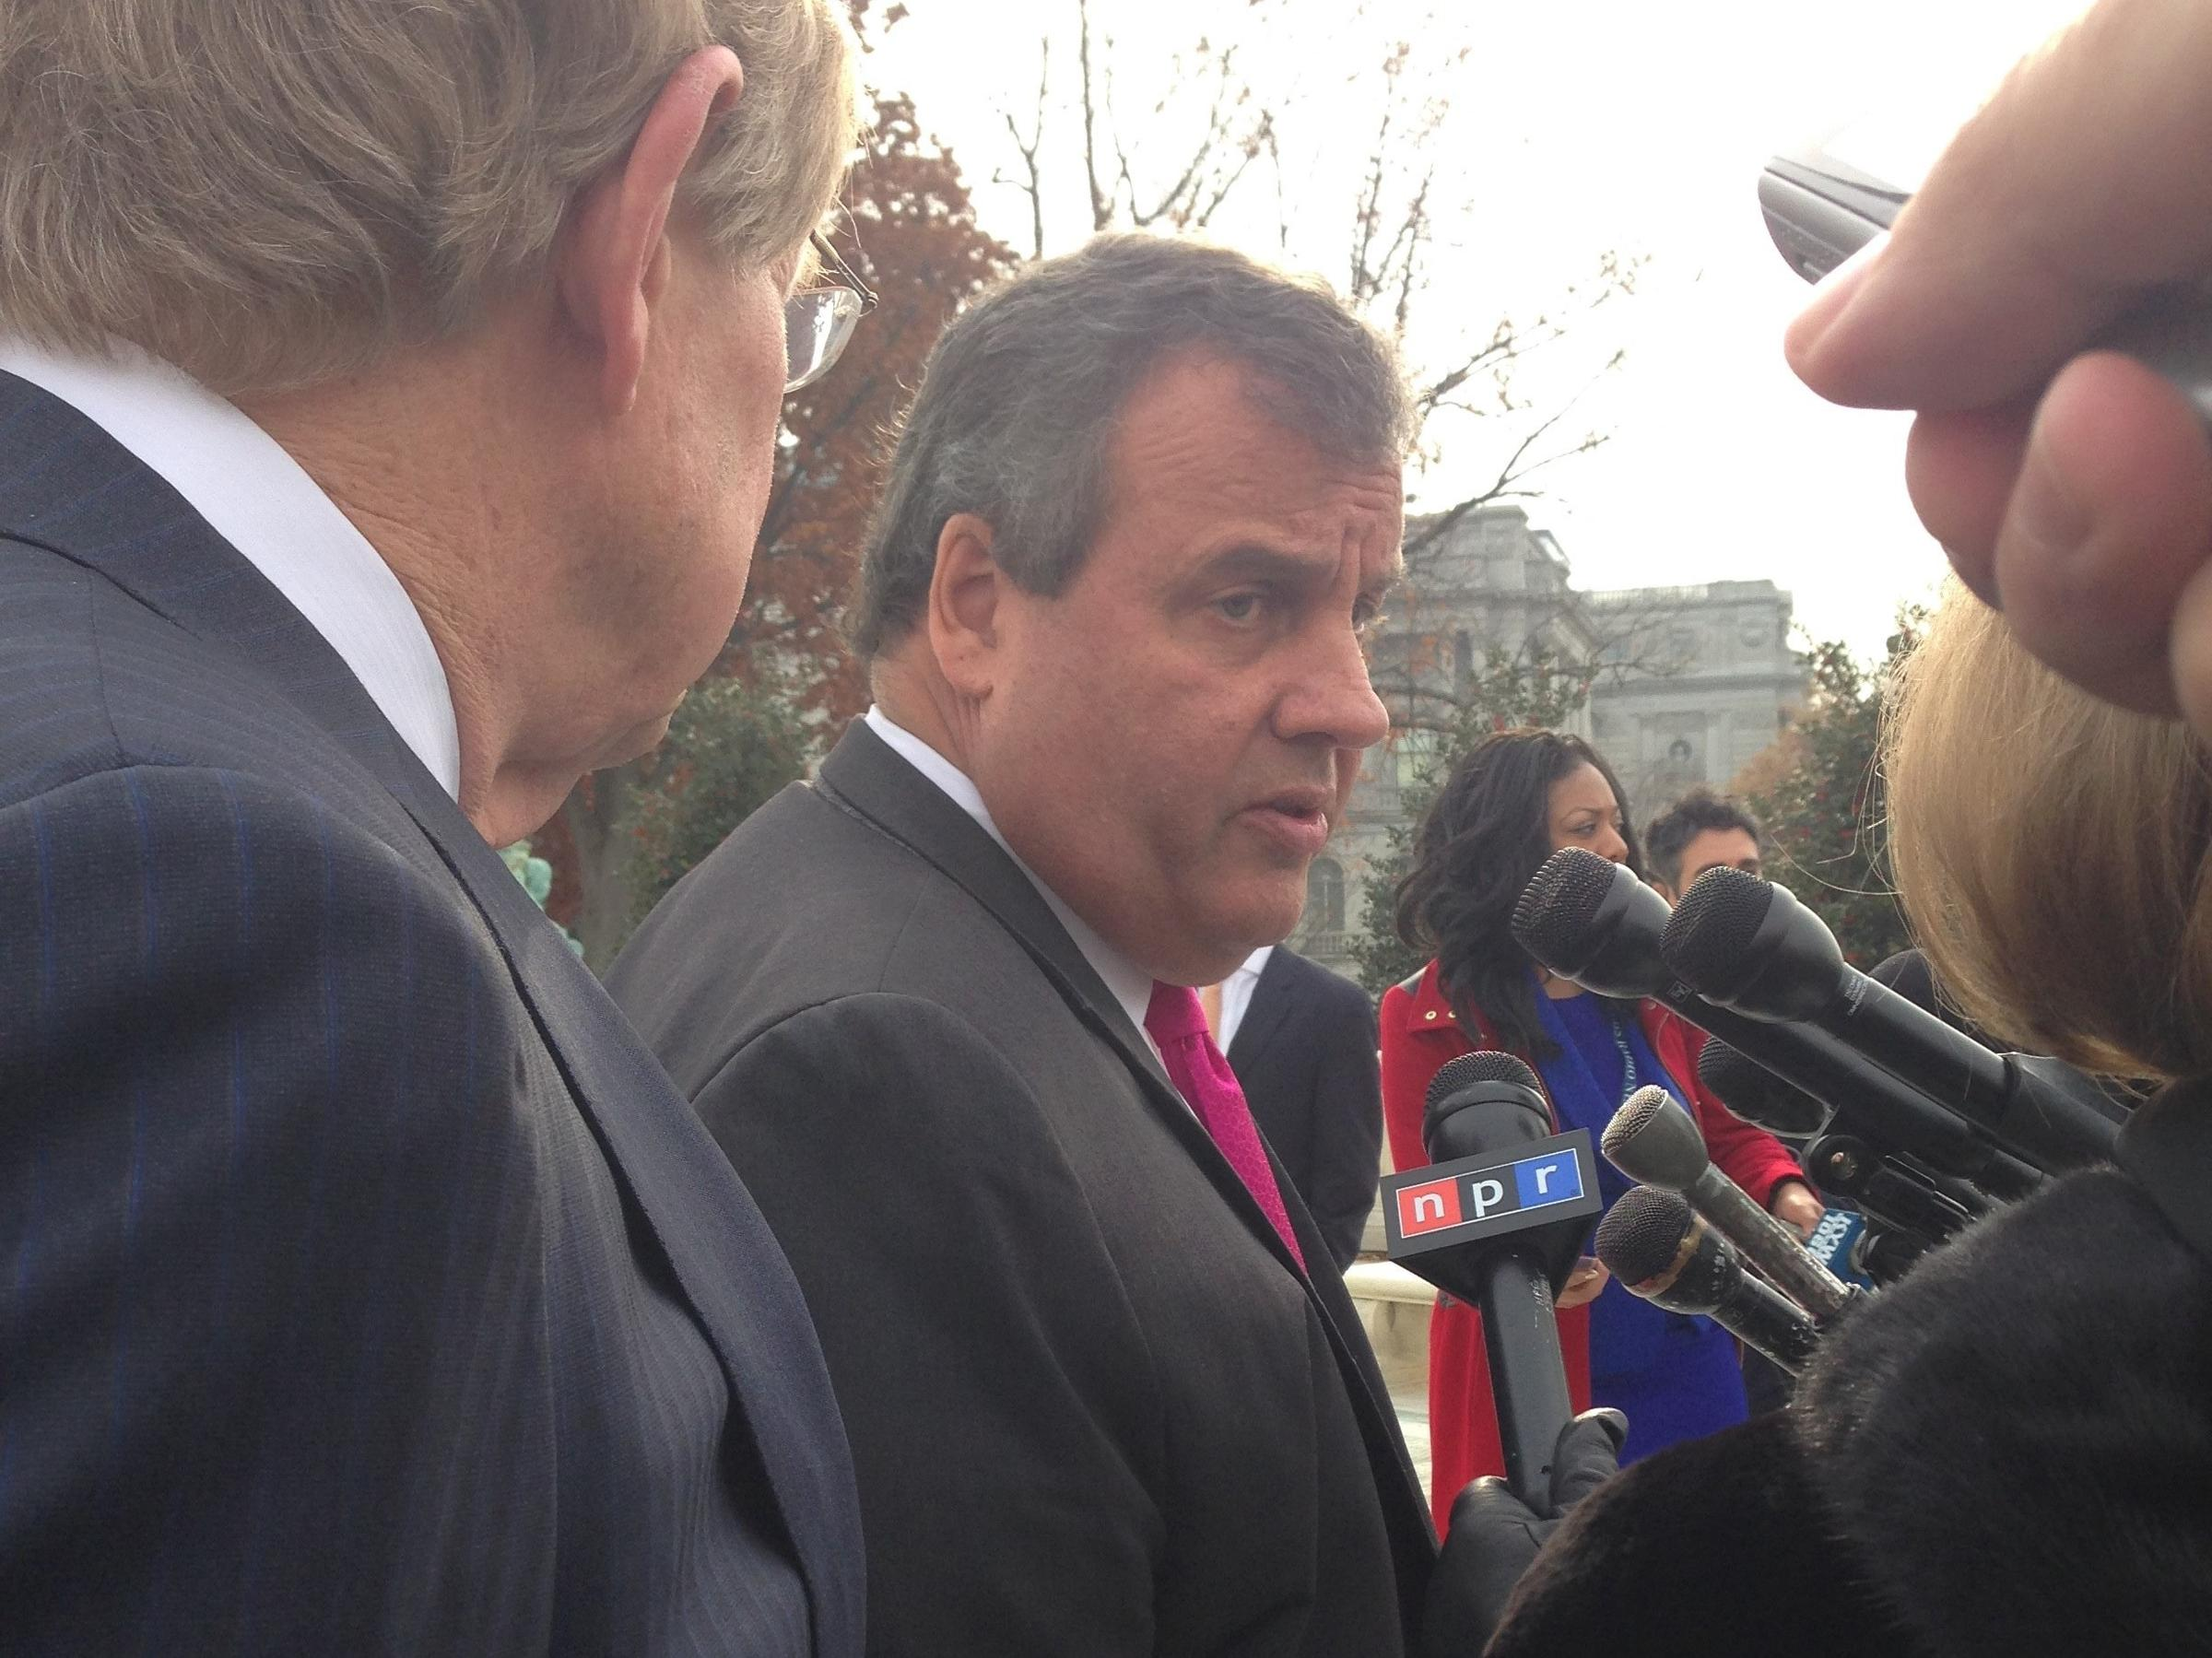 New Jersey Gov. Chris Christie answers questions about a sports gambling case after Supreme Court arguments on Monday